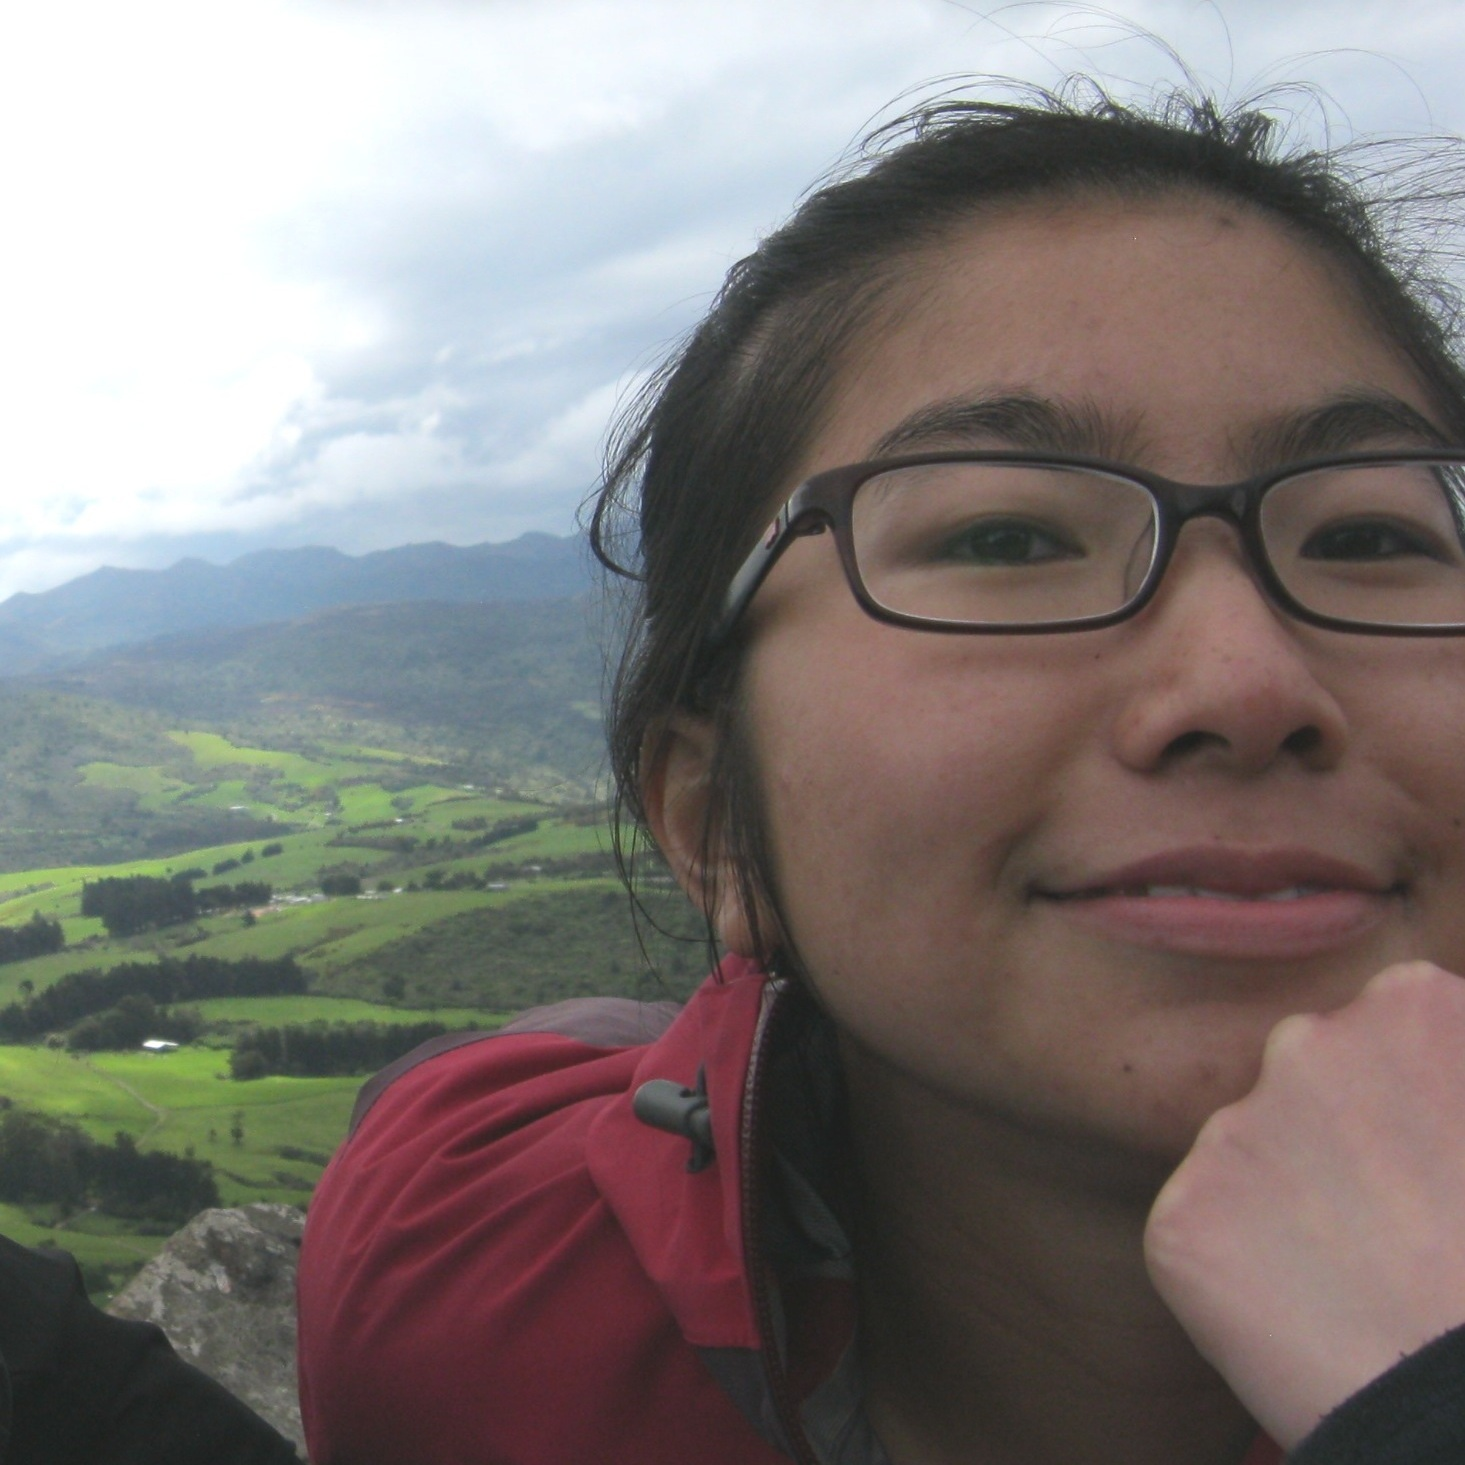 Lucy Huang  Supervisor: Monica  Lucy grew up in Dunedin where she graduated with a BSc (Hons) in Microbiology from the University of Otago. She then moved to Wellington to start a PhD with Monica, investigating bacterial chemotaxis in the plant pathogen Pseudomonas syringae pv. actinidiae (causative agent of kiwifruit canker).  Combining her passion for art and research, Lucy wants to become a scientific illustrator and hopes to improve science communication.  Outside of the lab, Lucy likes to play pool, go rock climbing, and be around dogs.